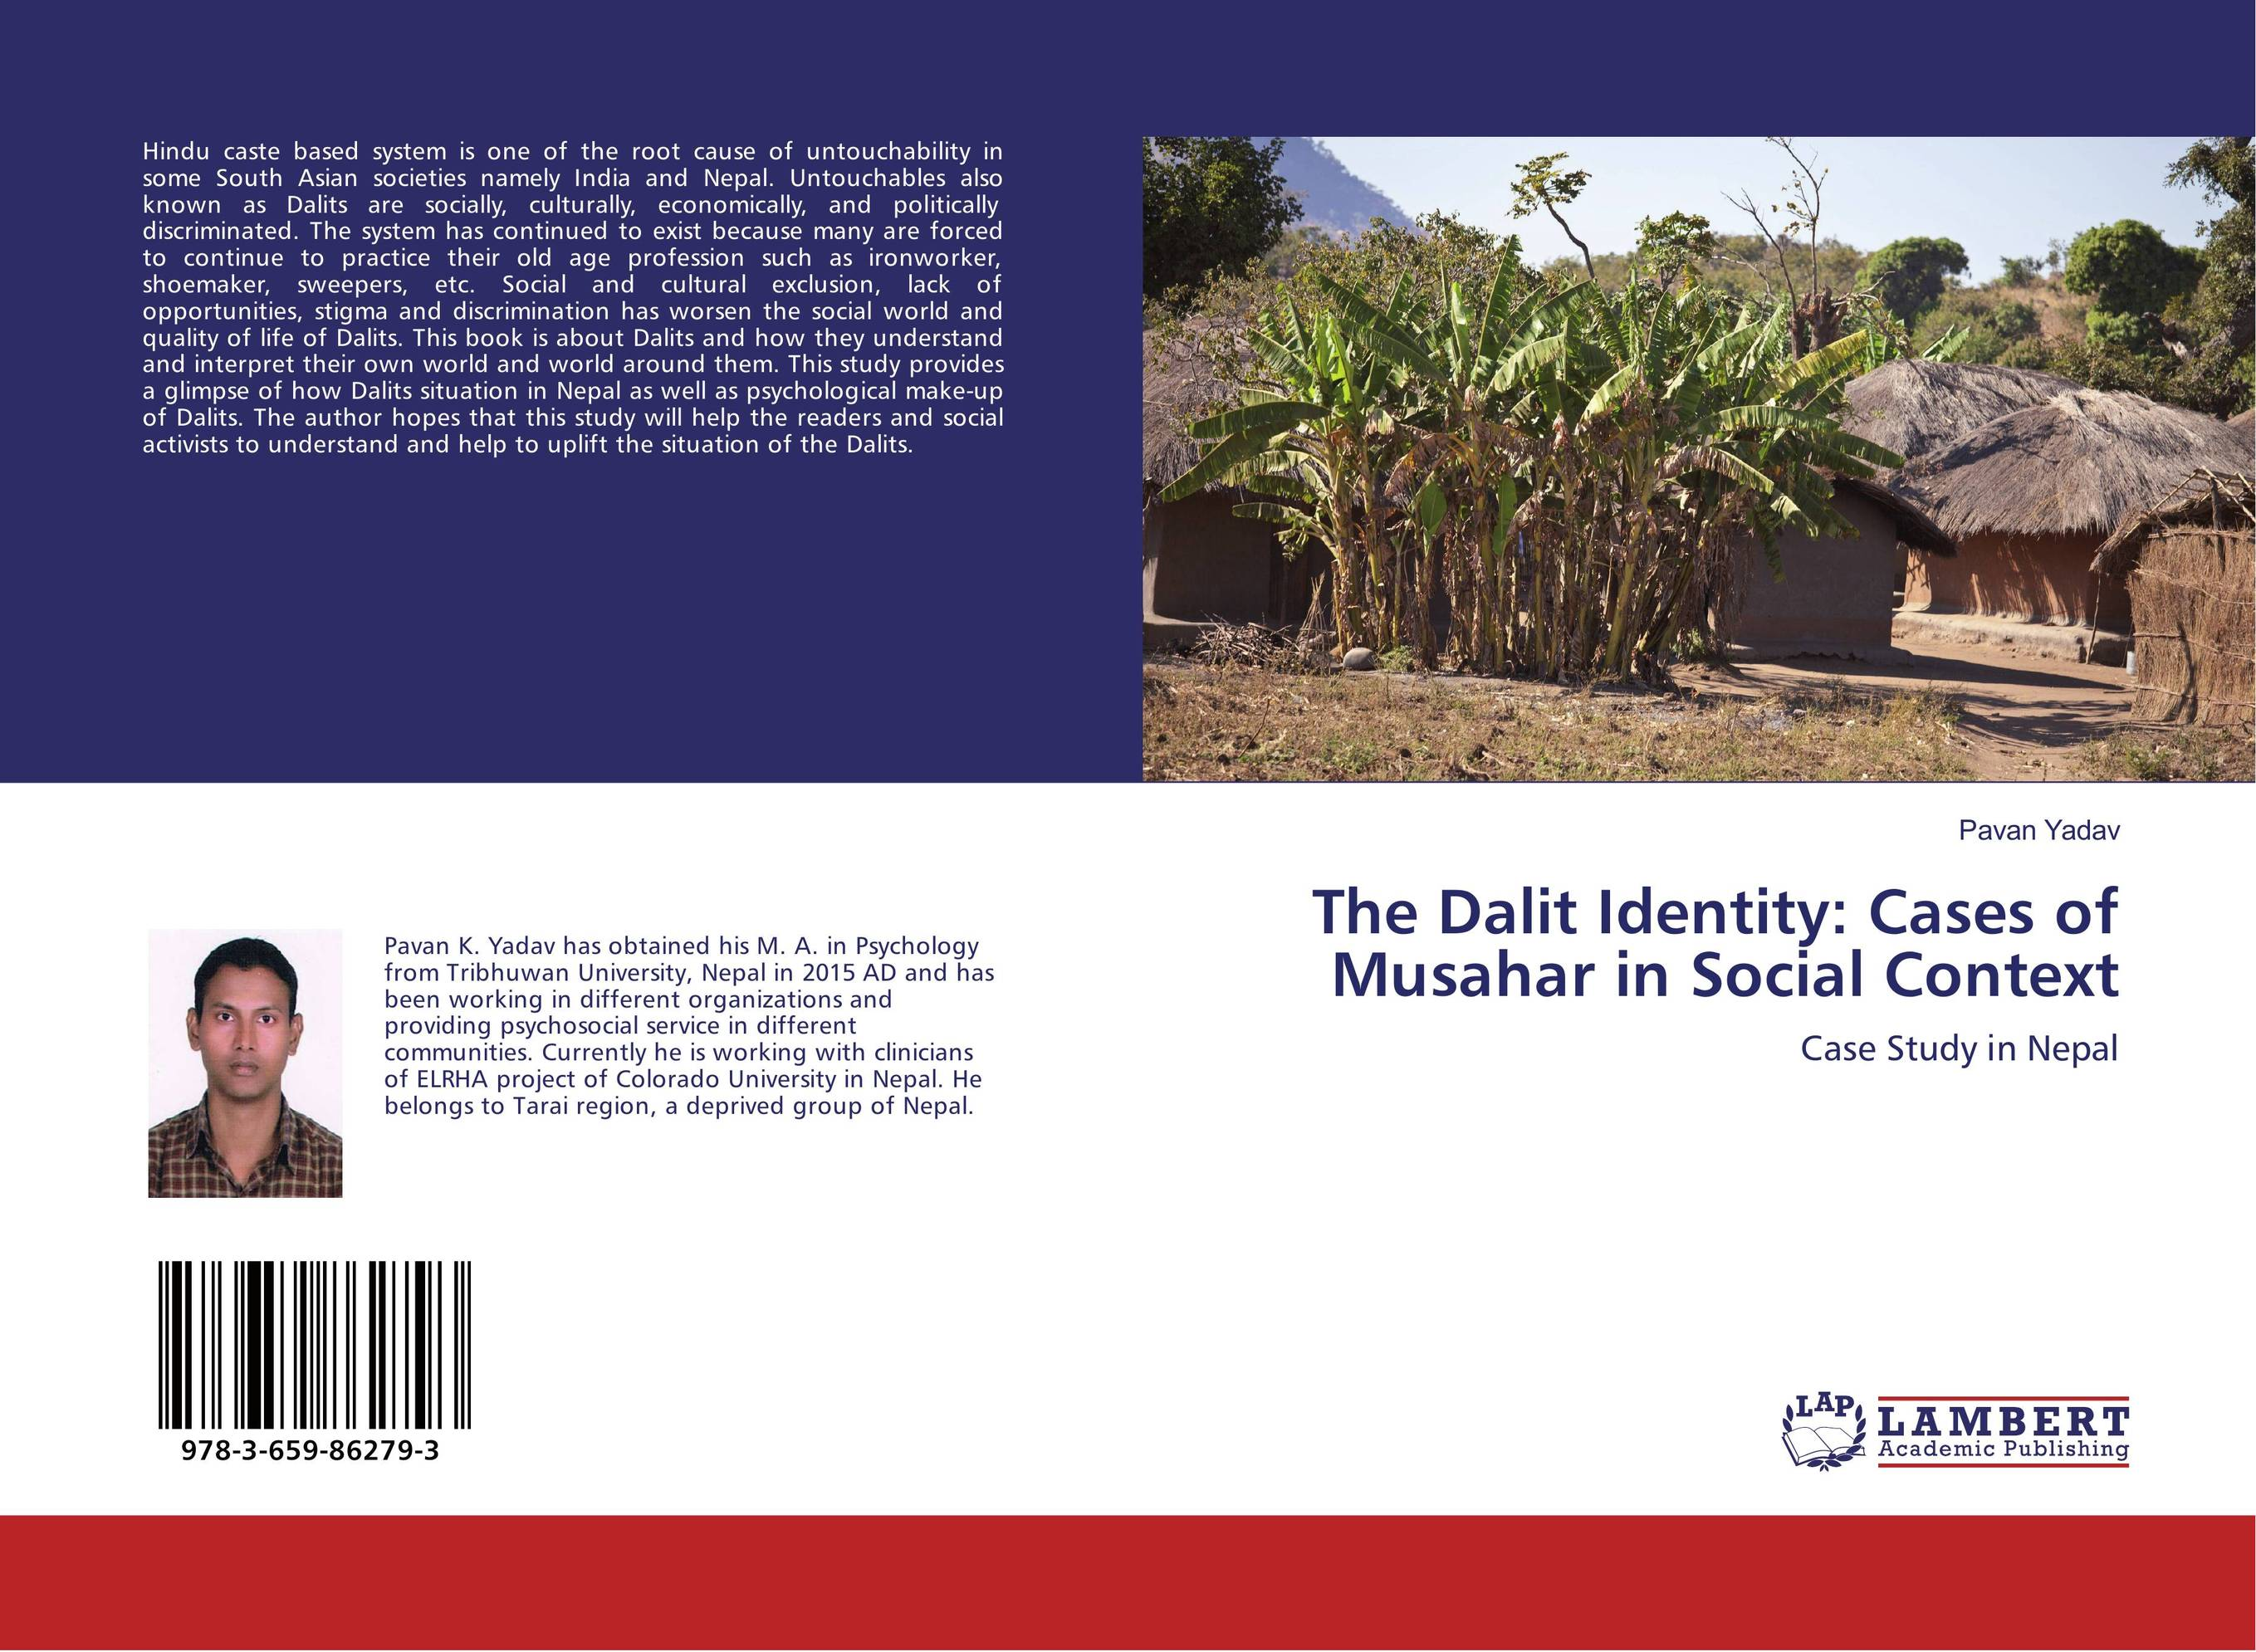 The Dalit Identity: Cases of Musahar in Social Context the lighye caste system